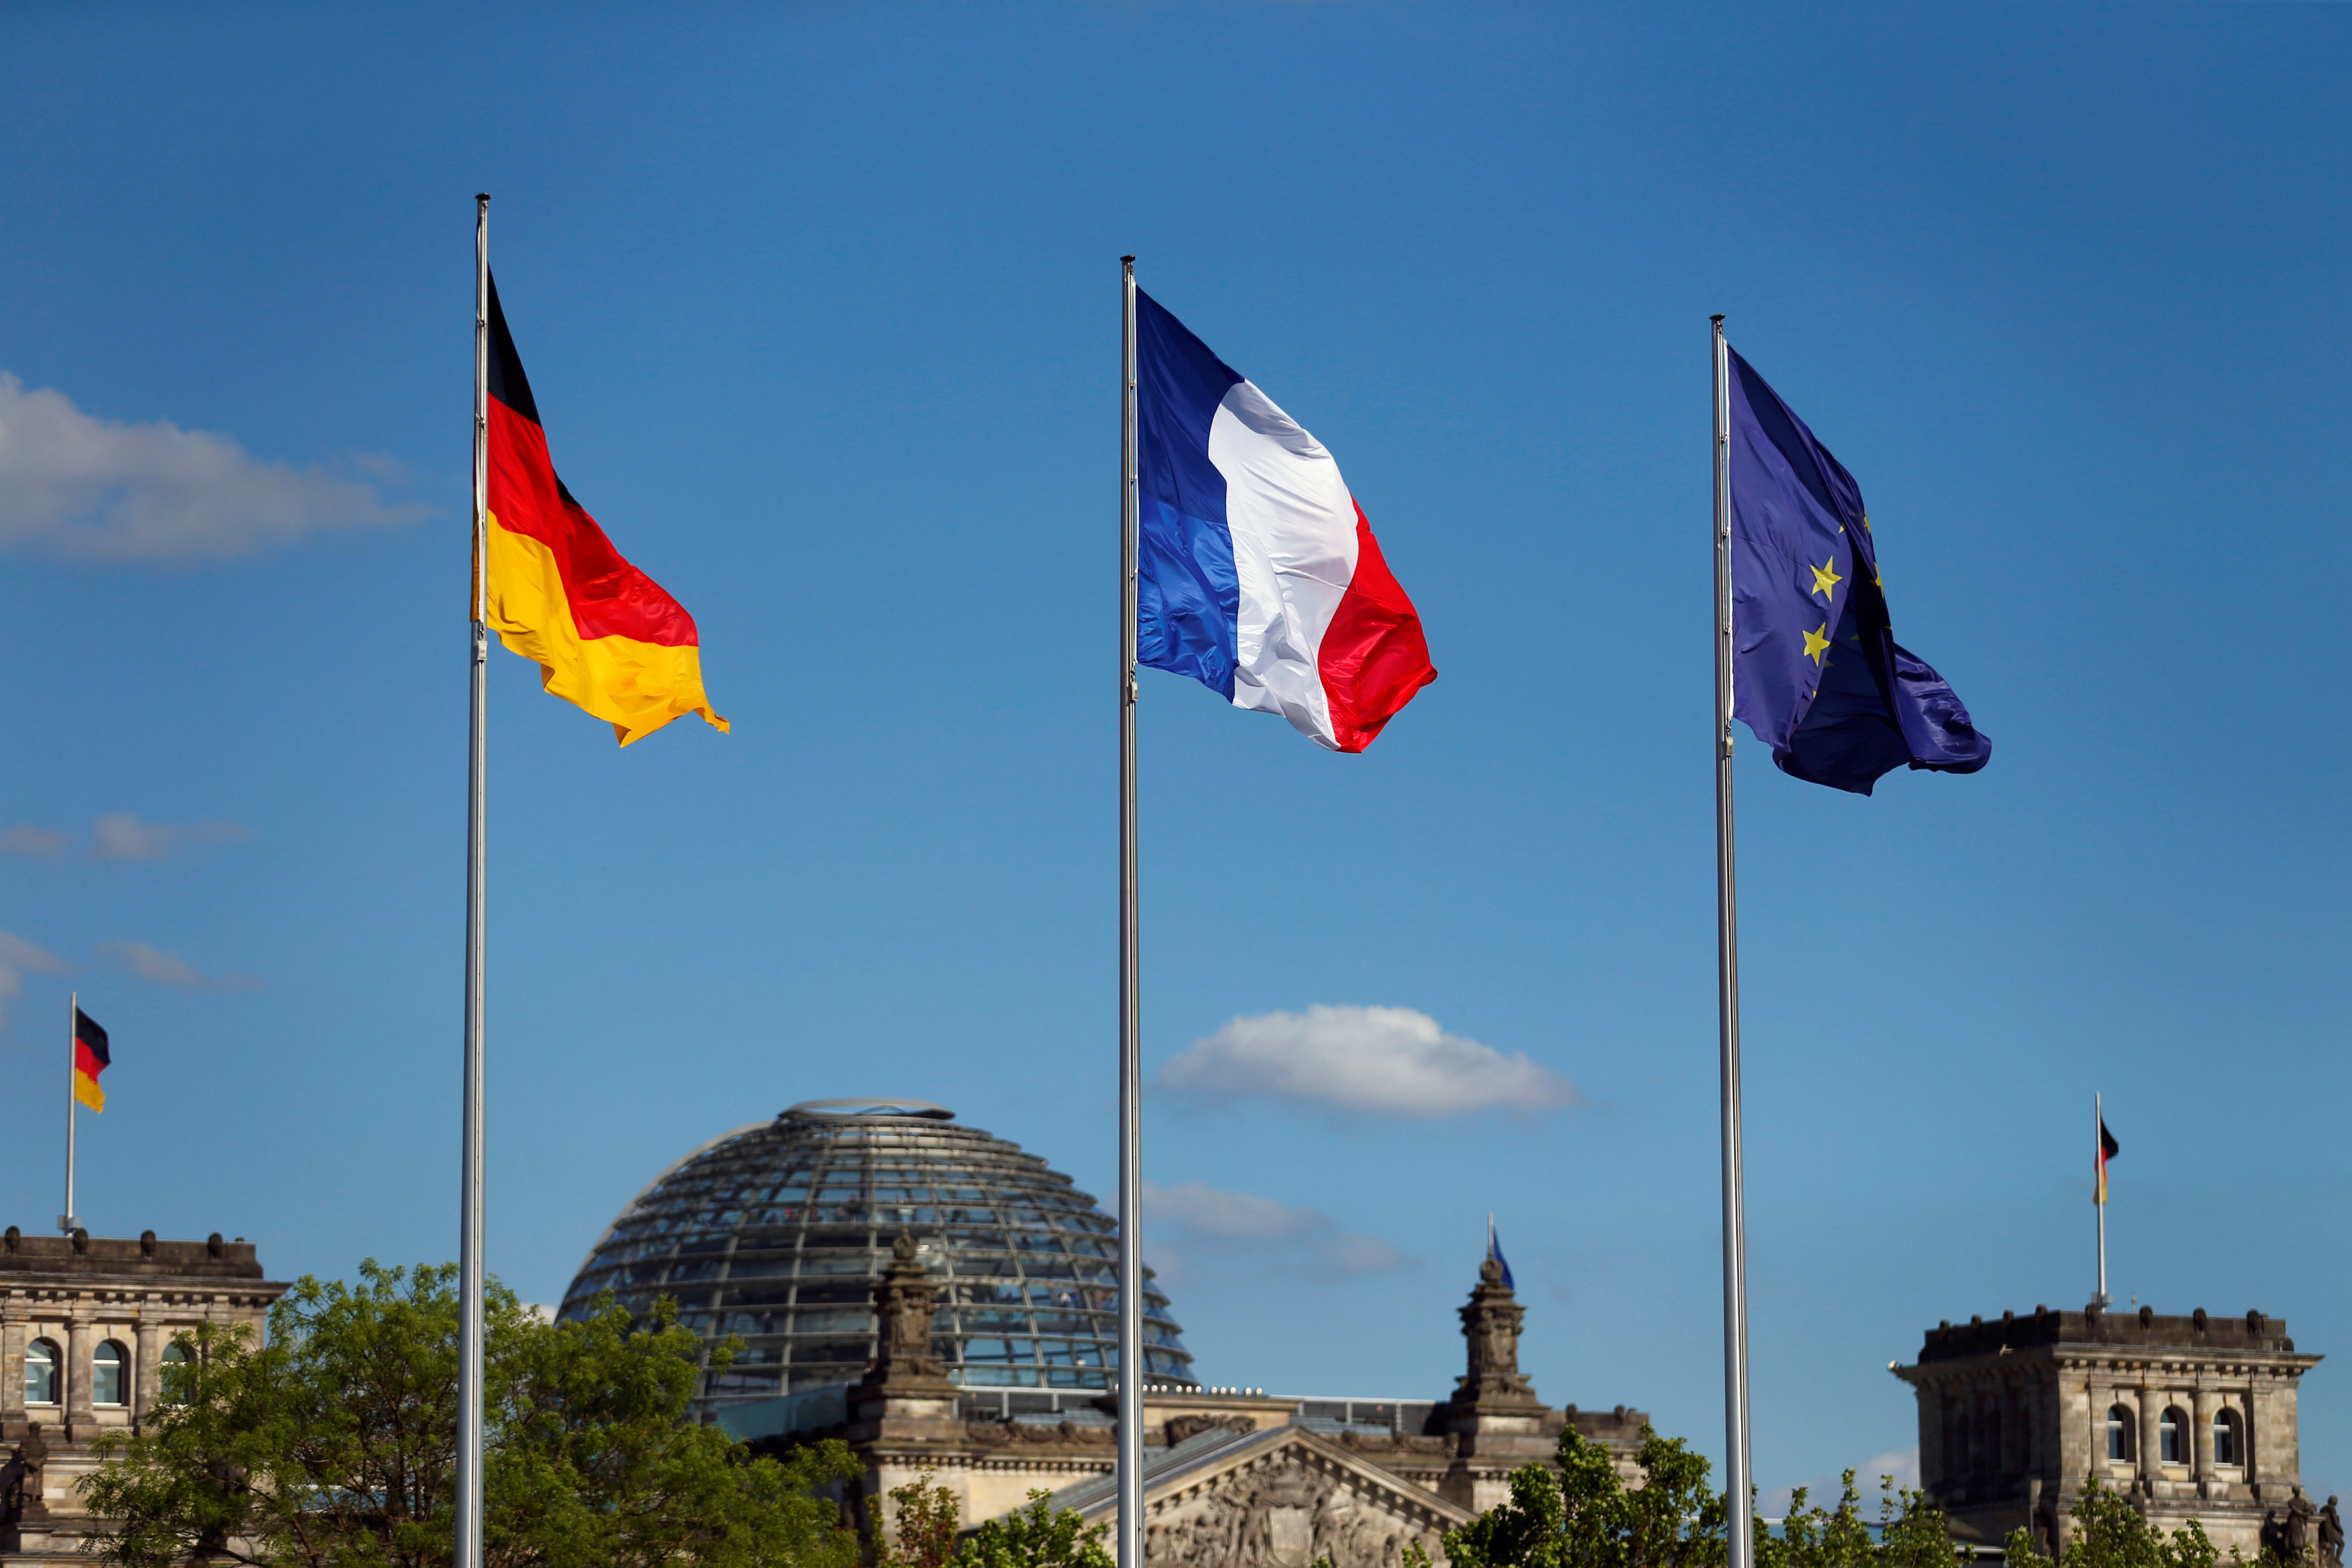 The flags of Germany, France and the European Union are seen in front of the the Chancellery, before the meeting between German Chancellor Angela Merkel and French President Emmanuel Macron in Berlin, Germany on May 15, 2017. (REUTERS/Hannibal Hanschke)